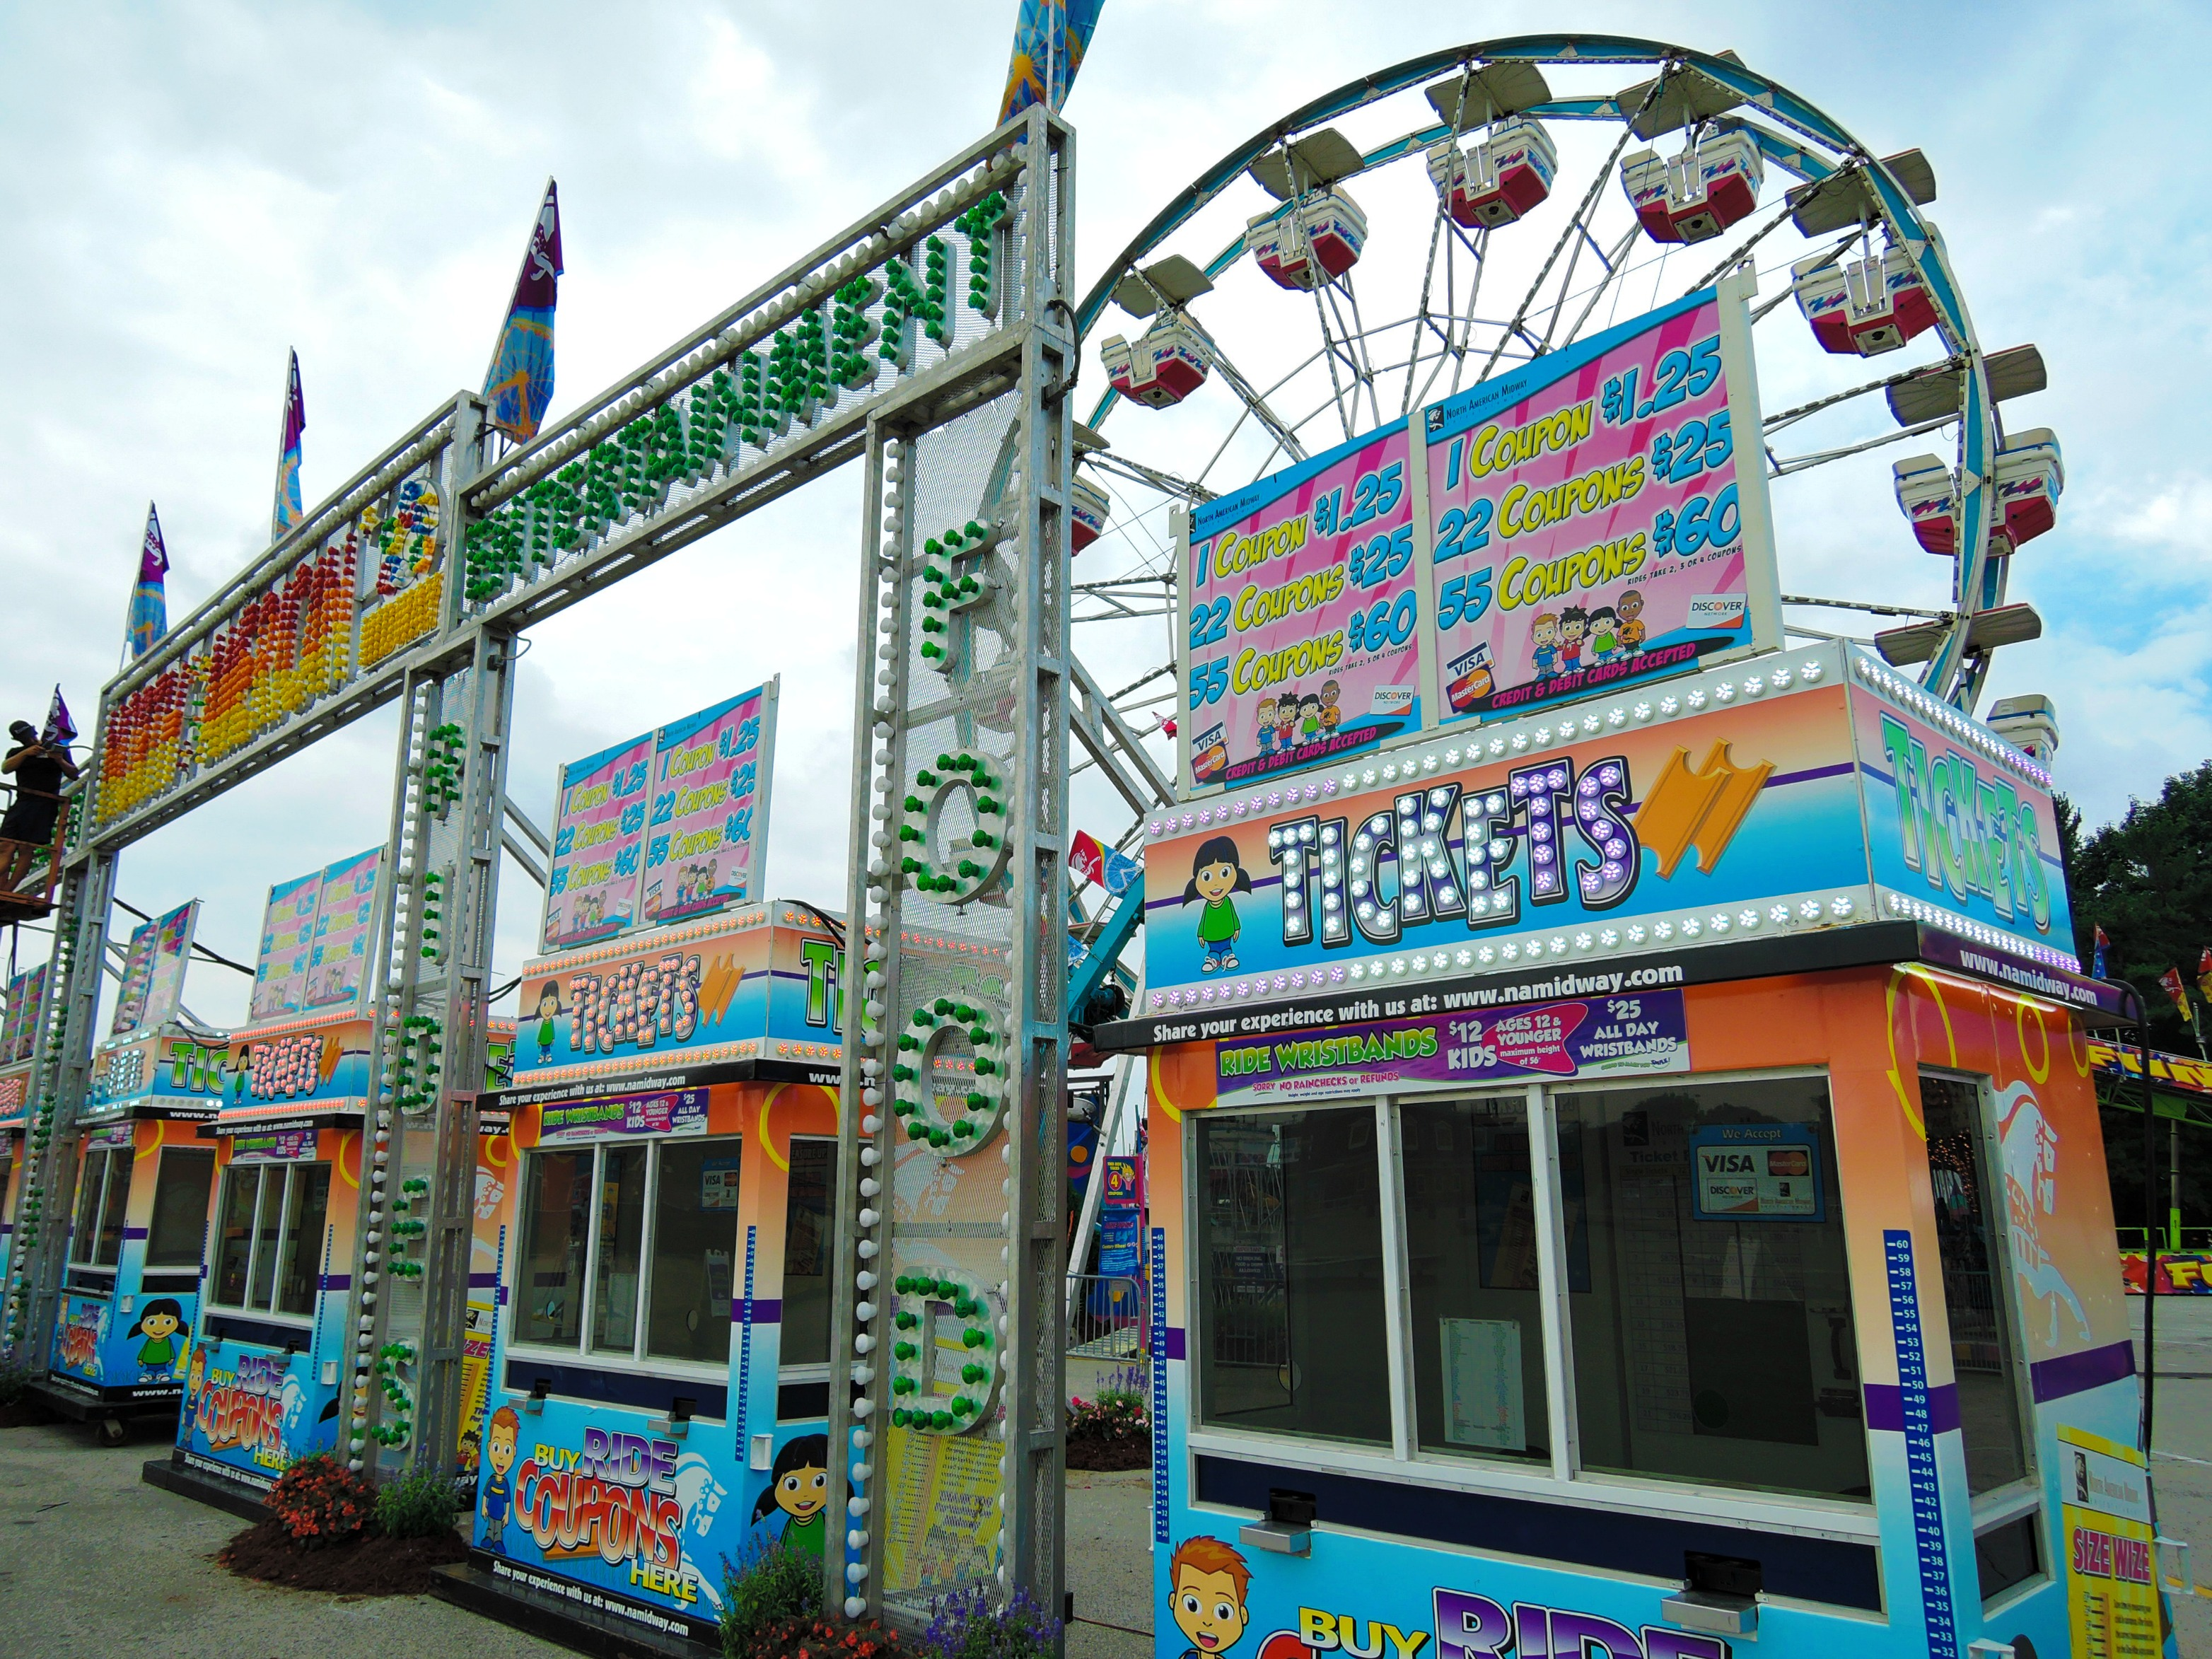 state fair the flying mantis opening day at the kentucky state fair photo essay